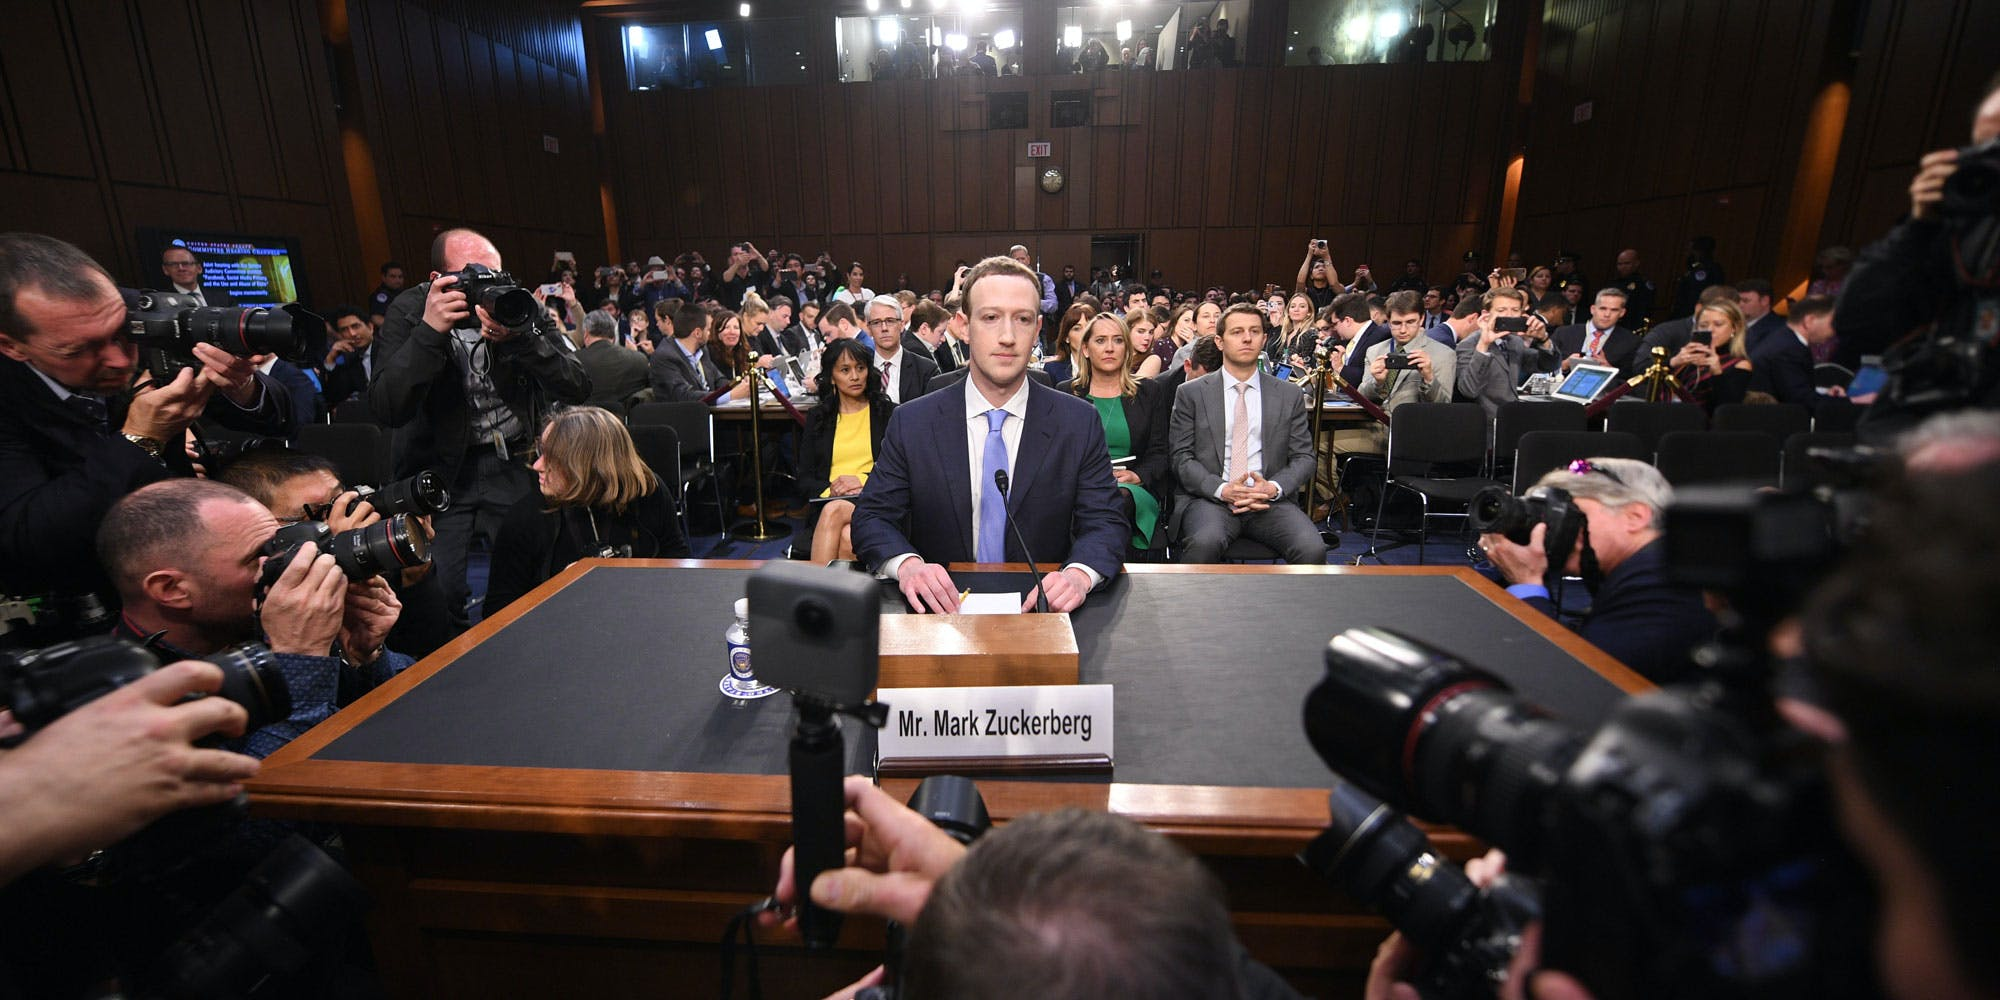 Facebook CEO Mark Zuckerberg arrives to testify before a joint hearing of the US Senate Commerce, Science and Transportation Committee and Senate Judiciary Committee on Capitol Hill, April 10, 2018 in Washington, DC. / AFP PHOTO / JIM WATSON (Photo credit should read JIM WATSON/AFP/Getty Images)